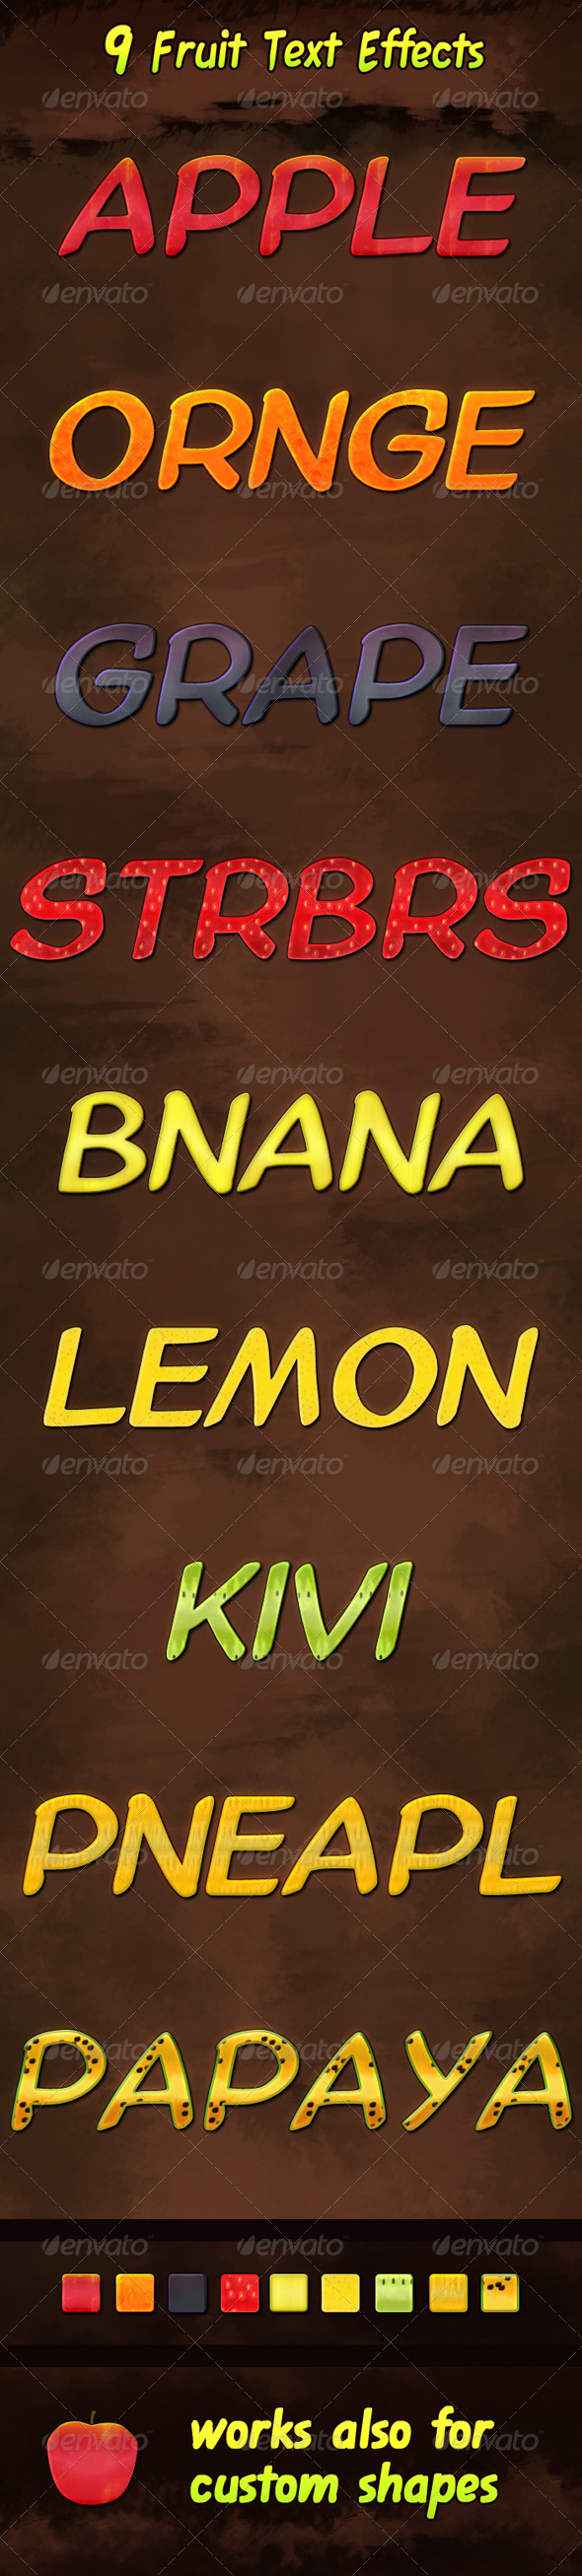 GraphicRiver Nine Fruit Text Effects 5802358